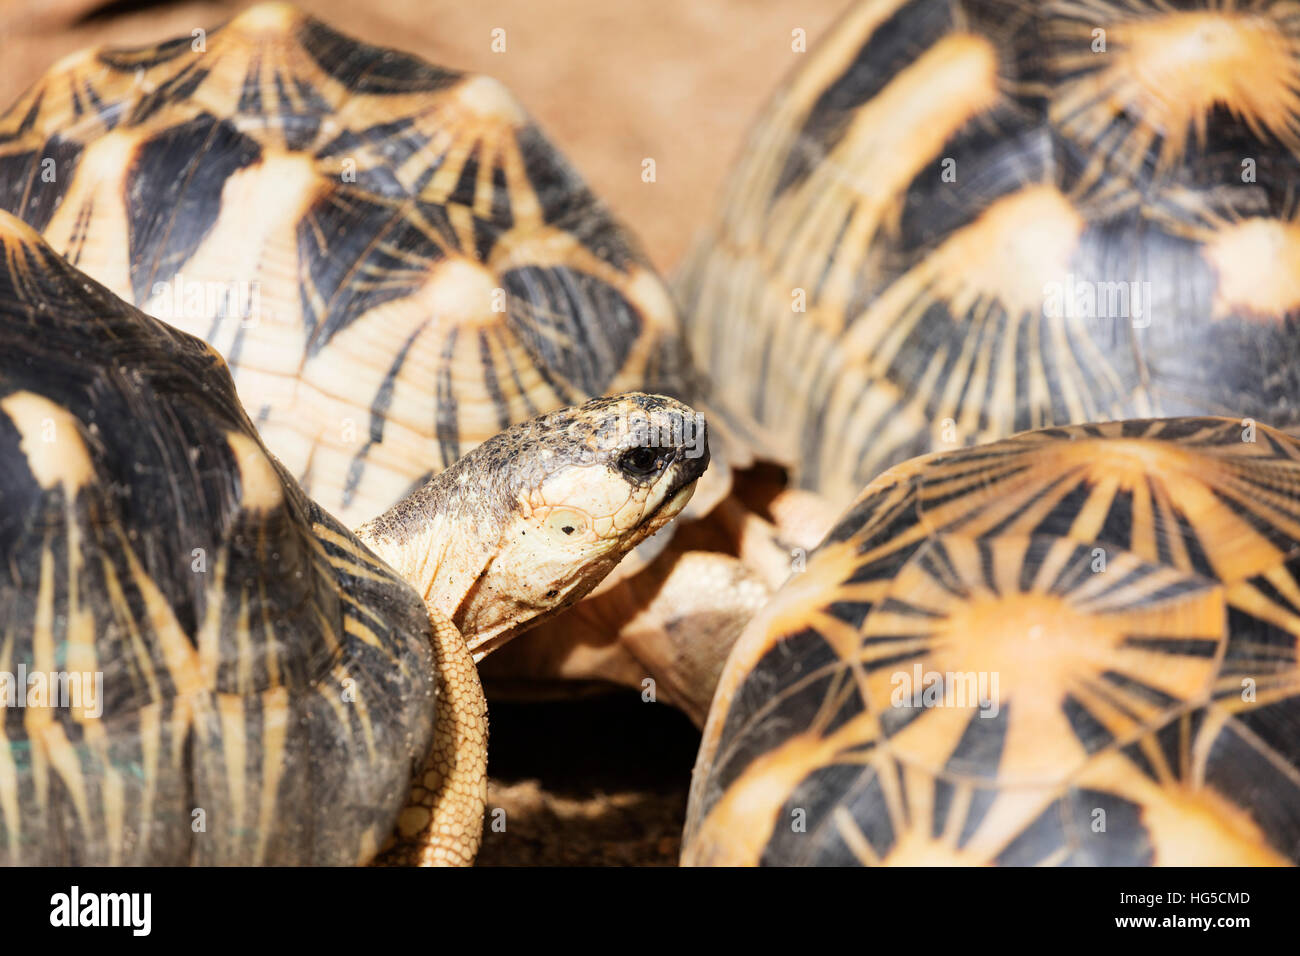 Radiated tortoise, critically endangered in the wild, Ivoloina Zoological Park, Tamatave - Stock Image